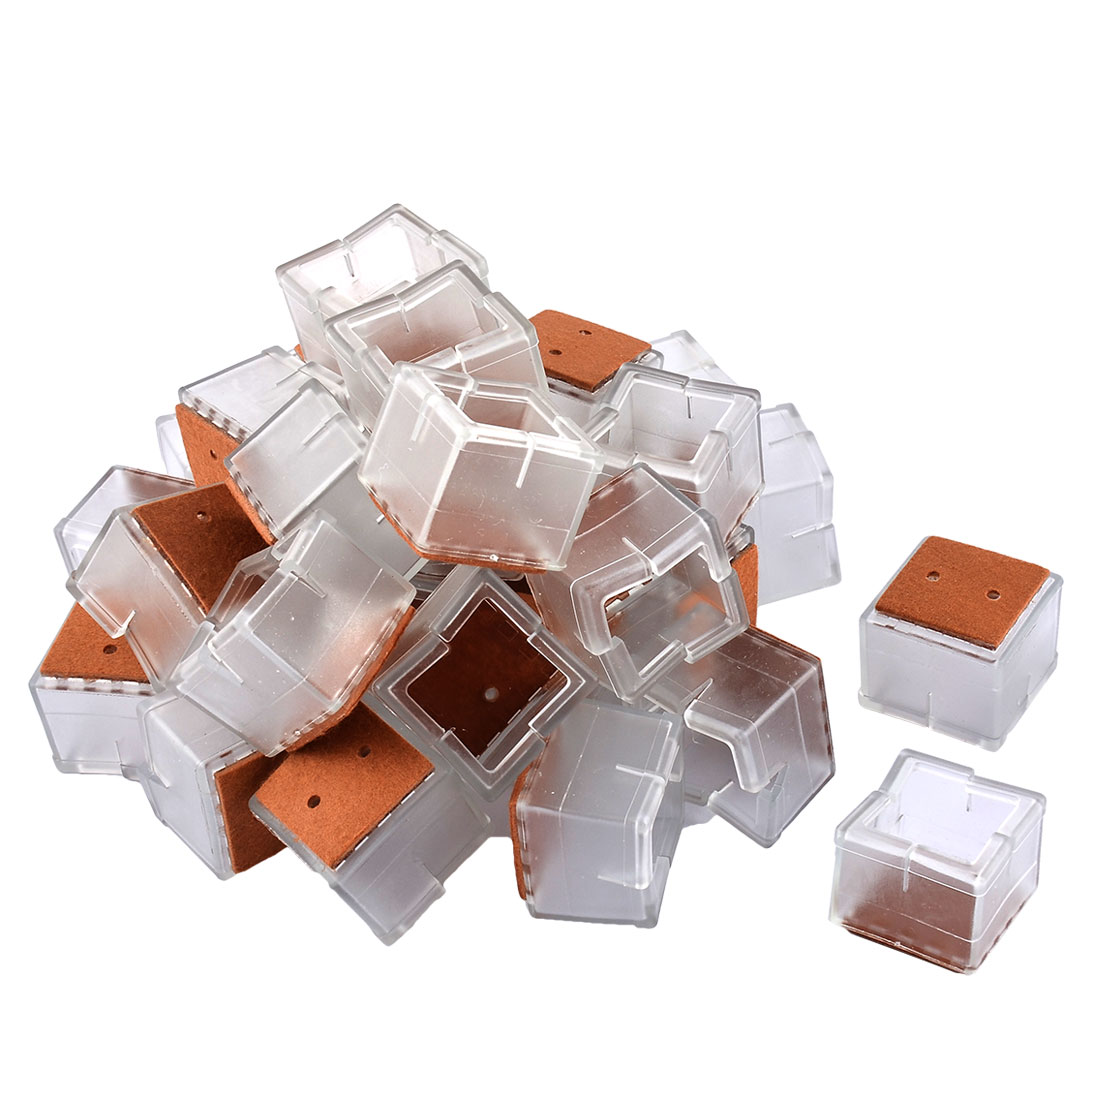 Silicone Square Shape Table Leg End Tip Cover Cap Clear 3.8 x 3.8 x 3.3cm 32pcs